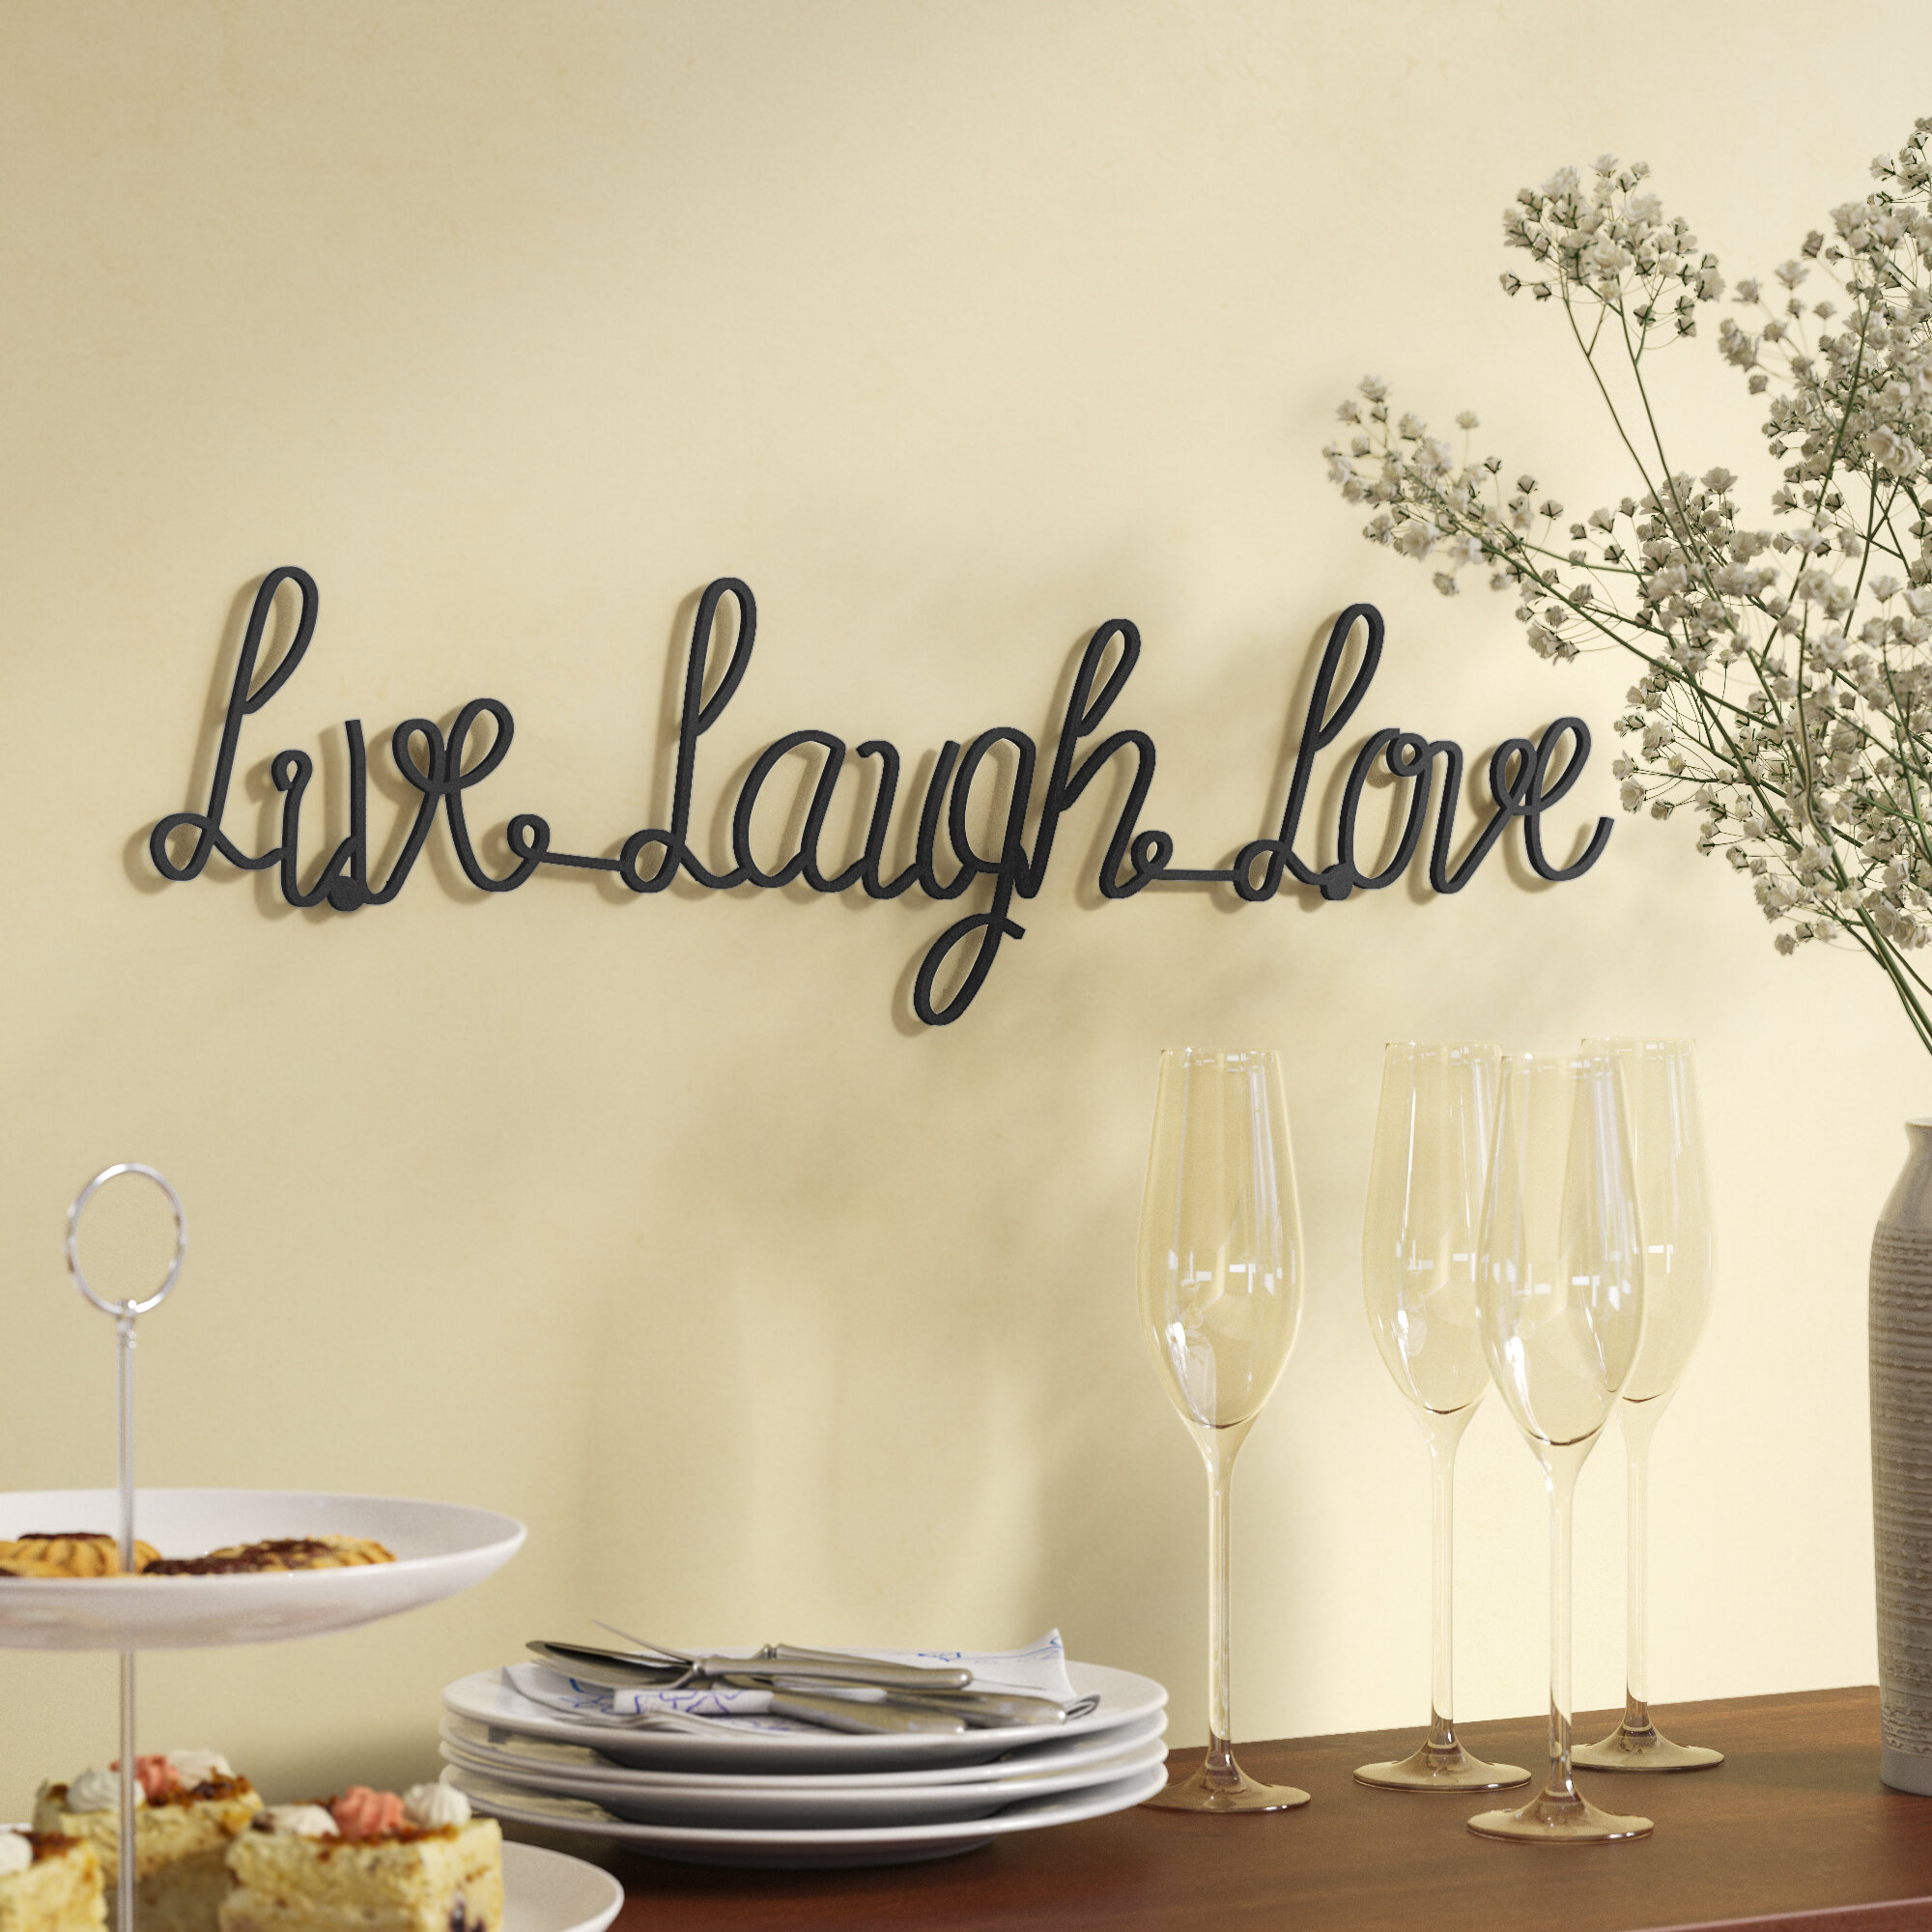 Current Metal Laundry Room Wall Decor By Winston Porter With Live Laugh Love Metal Wall Décor (View 20 of 20)